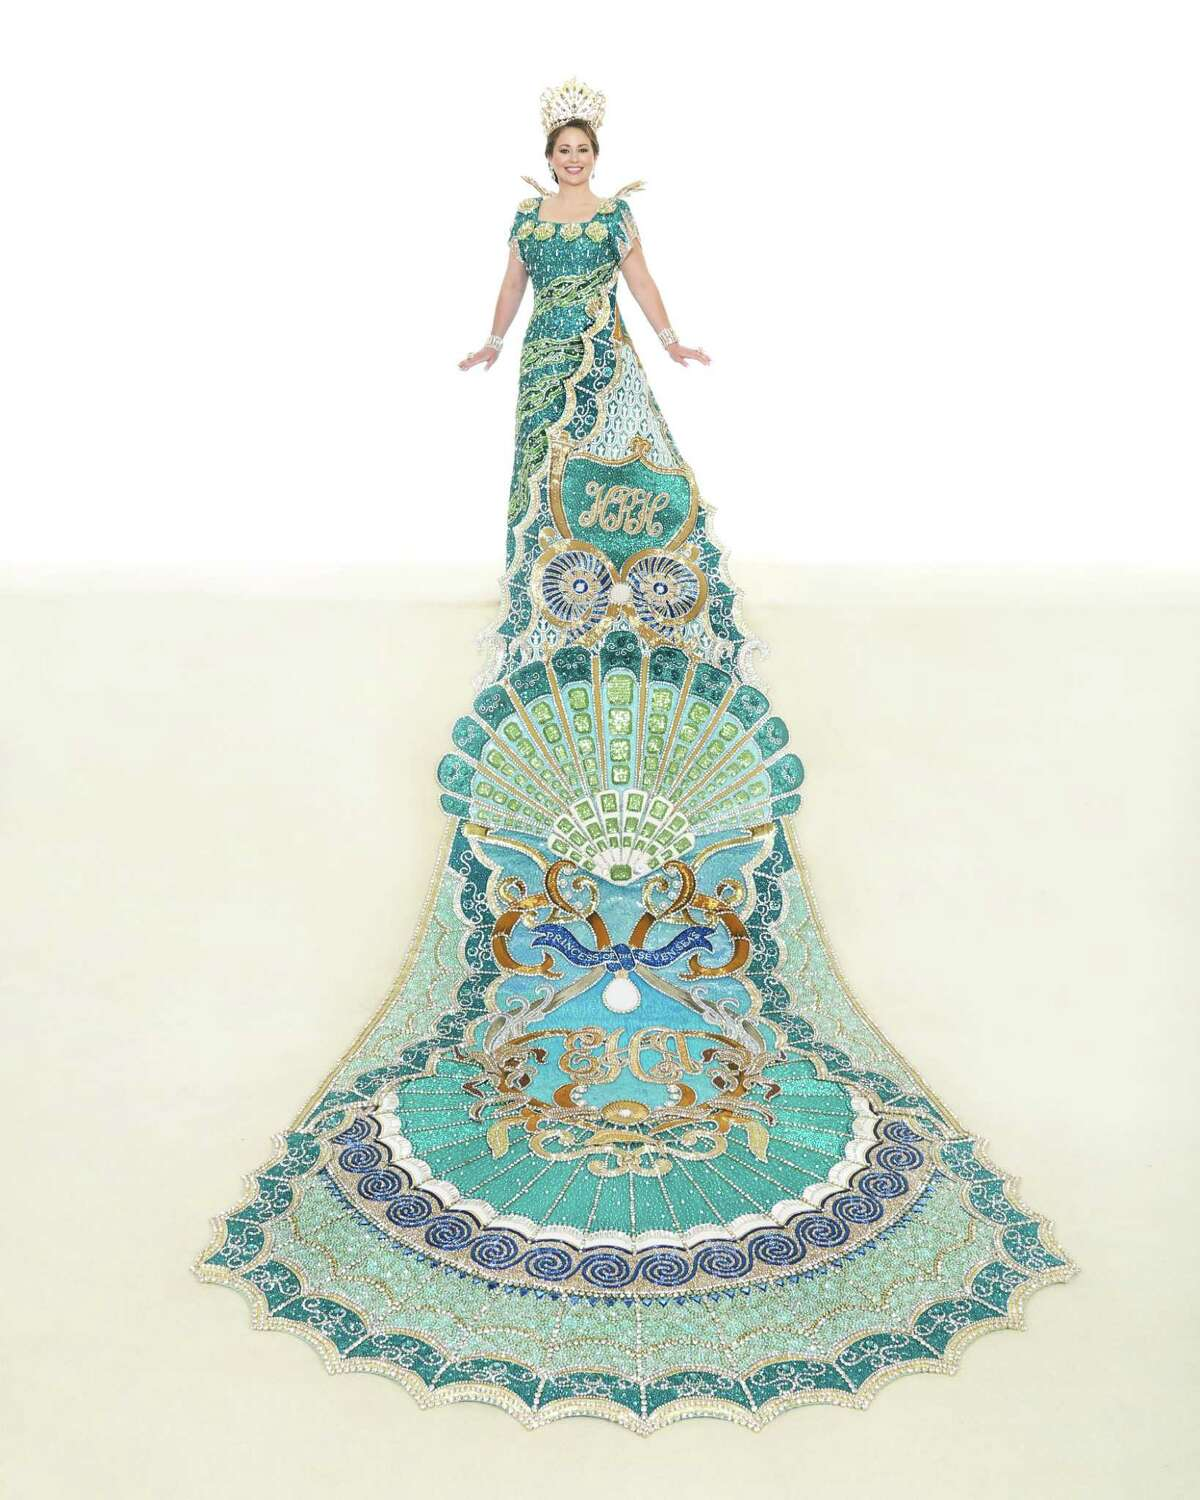 Princess Elizabeth Adaire Hughes, Princess of the Seven Seas: Representing the Seven Seas, the princess' gown is layered in shades of teal silk and embellished with several hues of sequins, blue zircon stones, crystals and drops of pearl. Scalloped shells of gold metallic lamé frame the neckline extending to the collar of metal featuring silver crystal navettes and rhinestone chain. The train of teal silk and metallic gold lamé is adorned with three stylized shells outlined with waves of crystal rhinestone chain. The princess is the daughter of Mr. and Mrs. Dan Allen Hughes Jr.